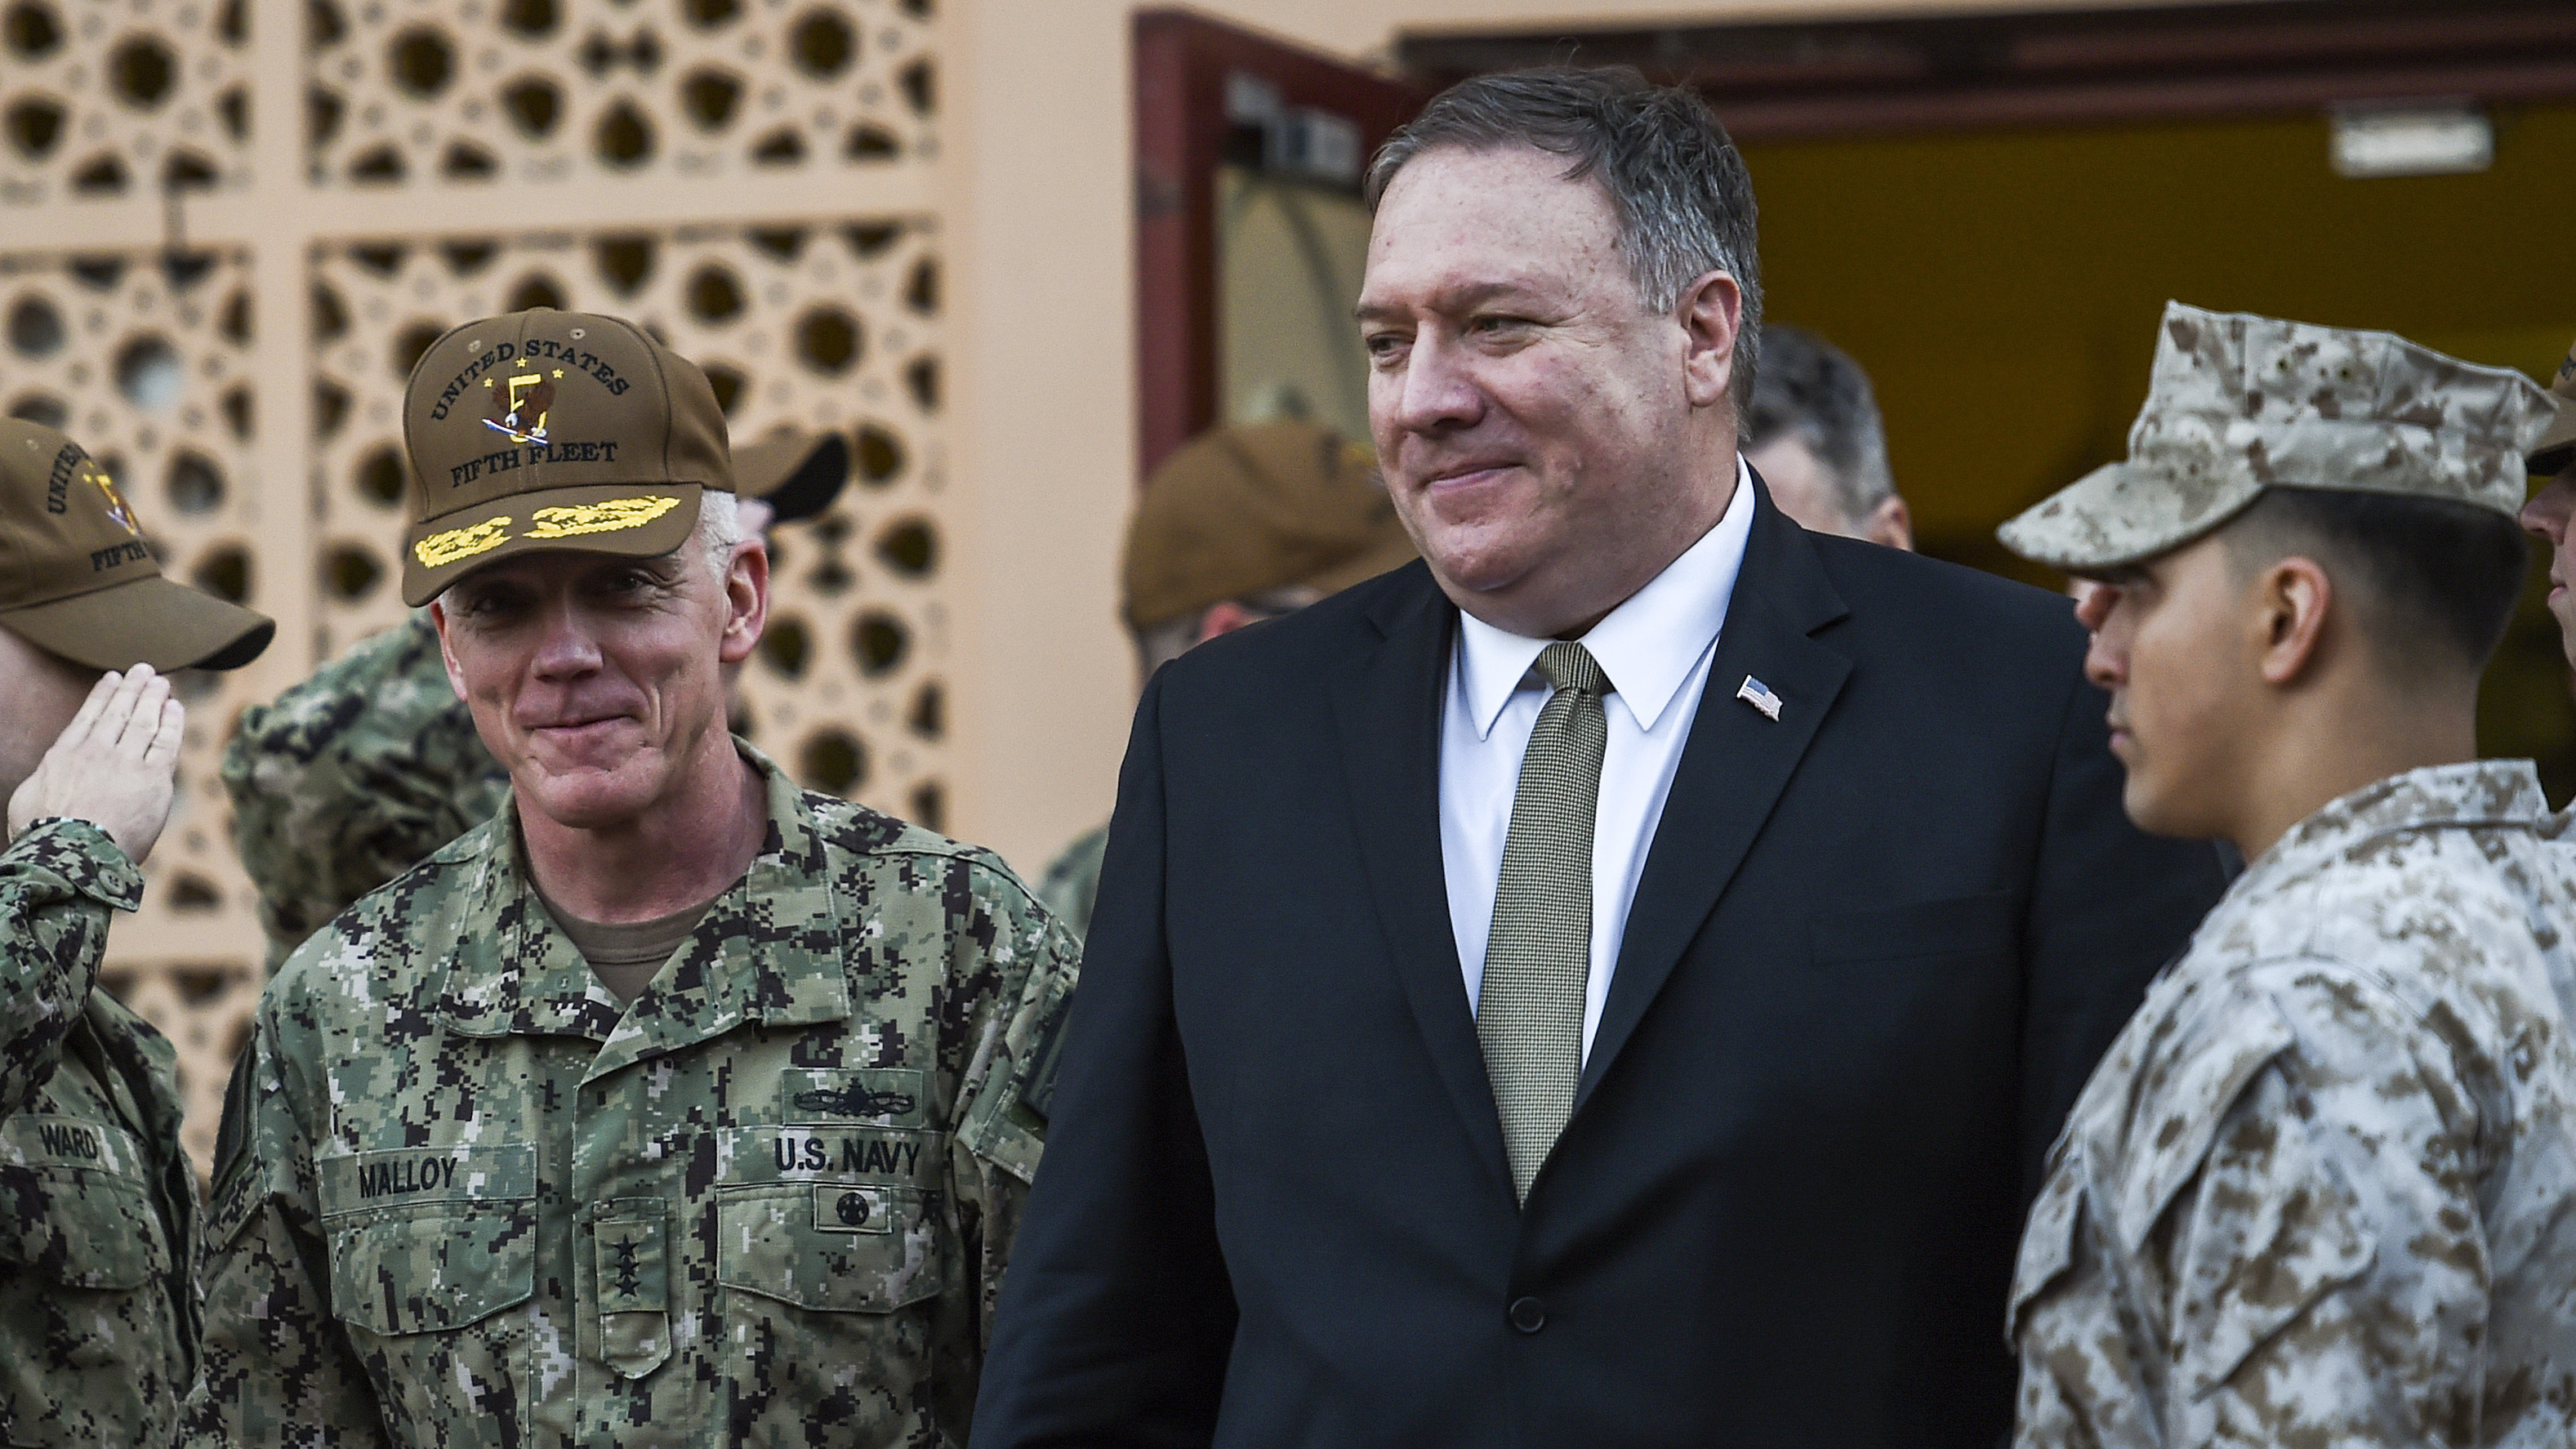 U.S. Secretary of State Mike Pompeo visited Bahrain on Friday